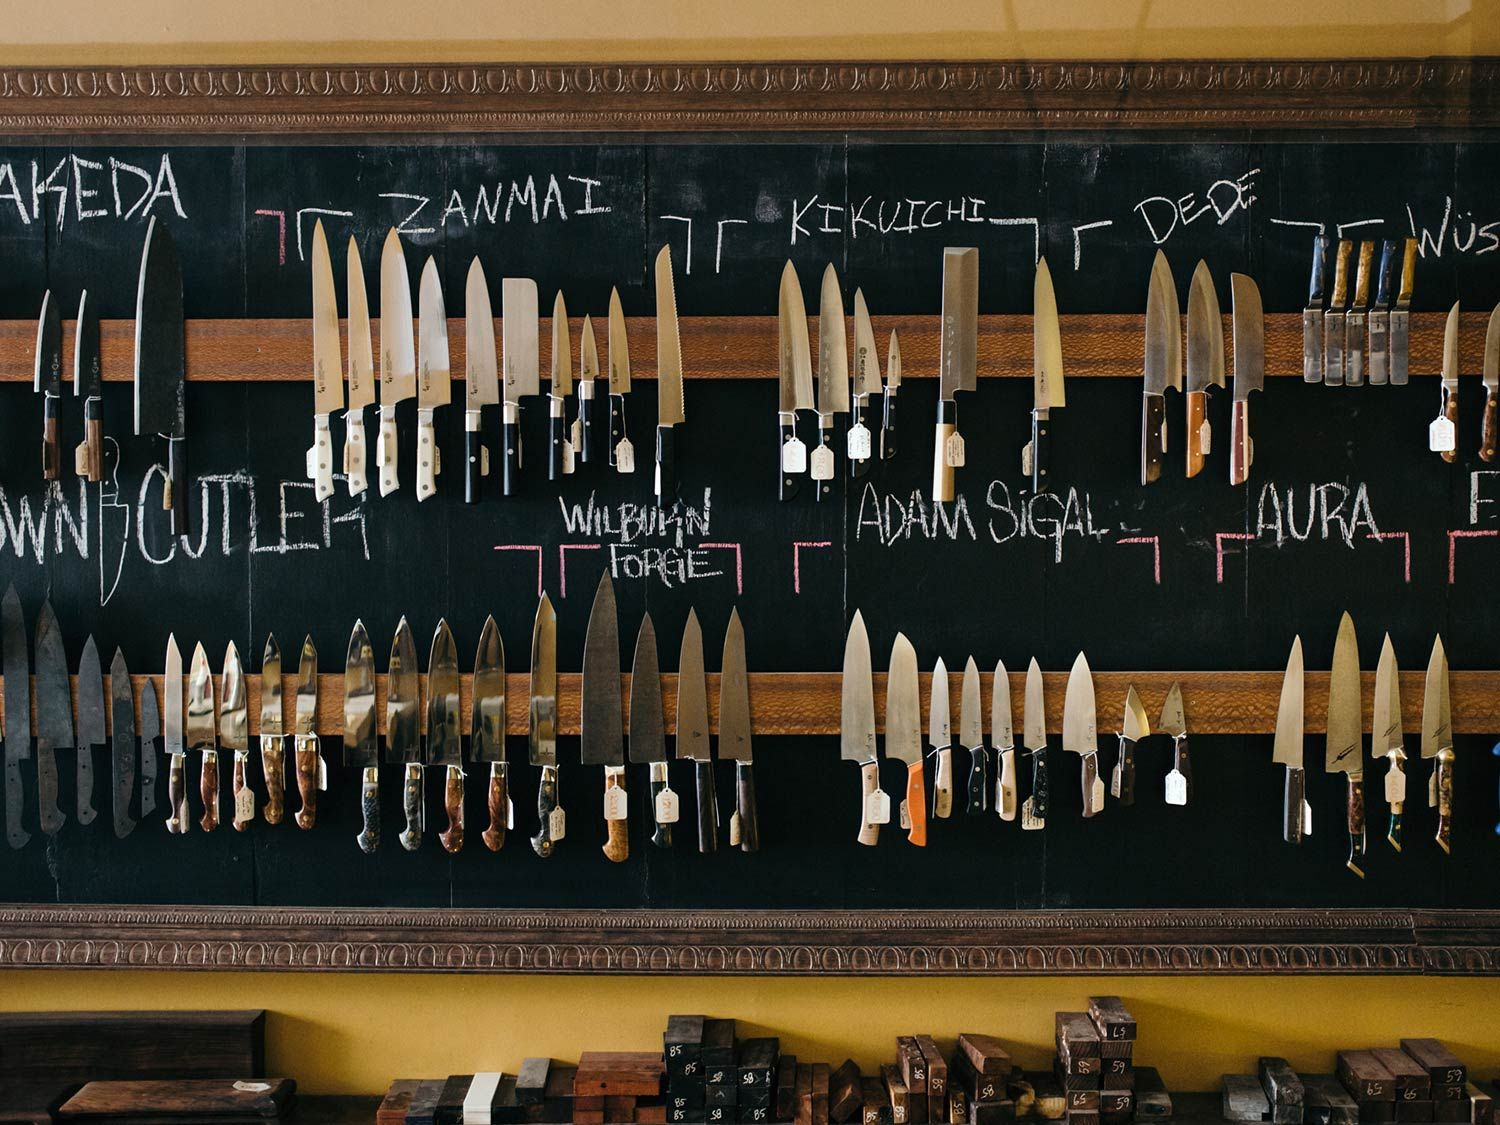 Step Inside One of The World's Most Beautiful Knife Shops   Saveur